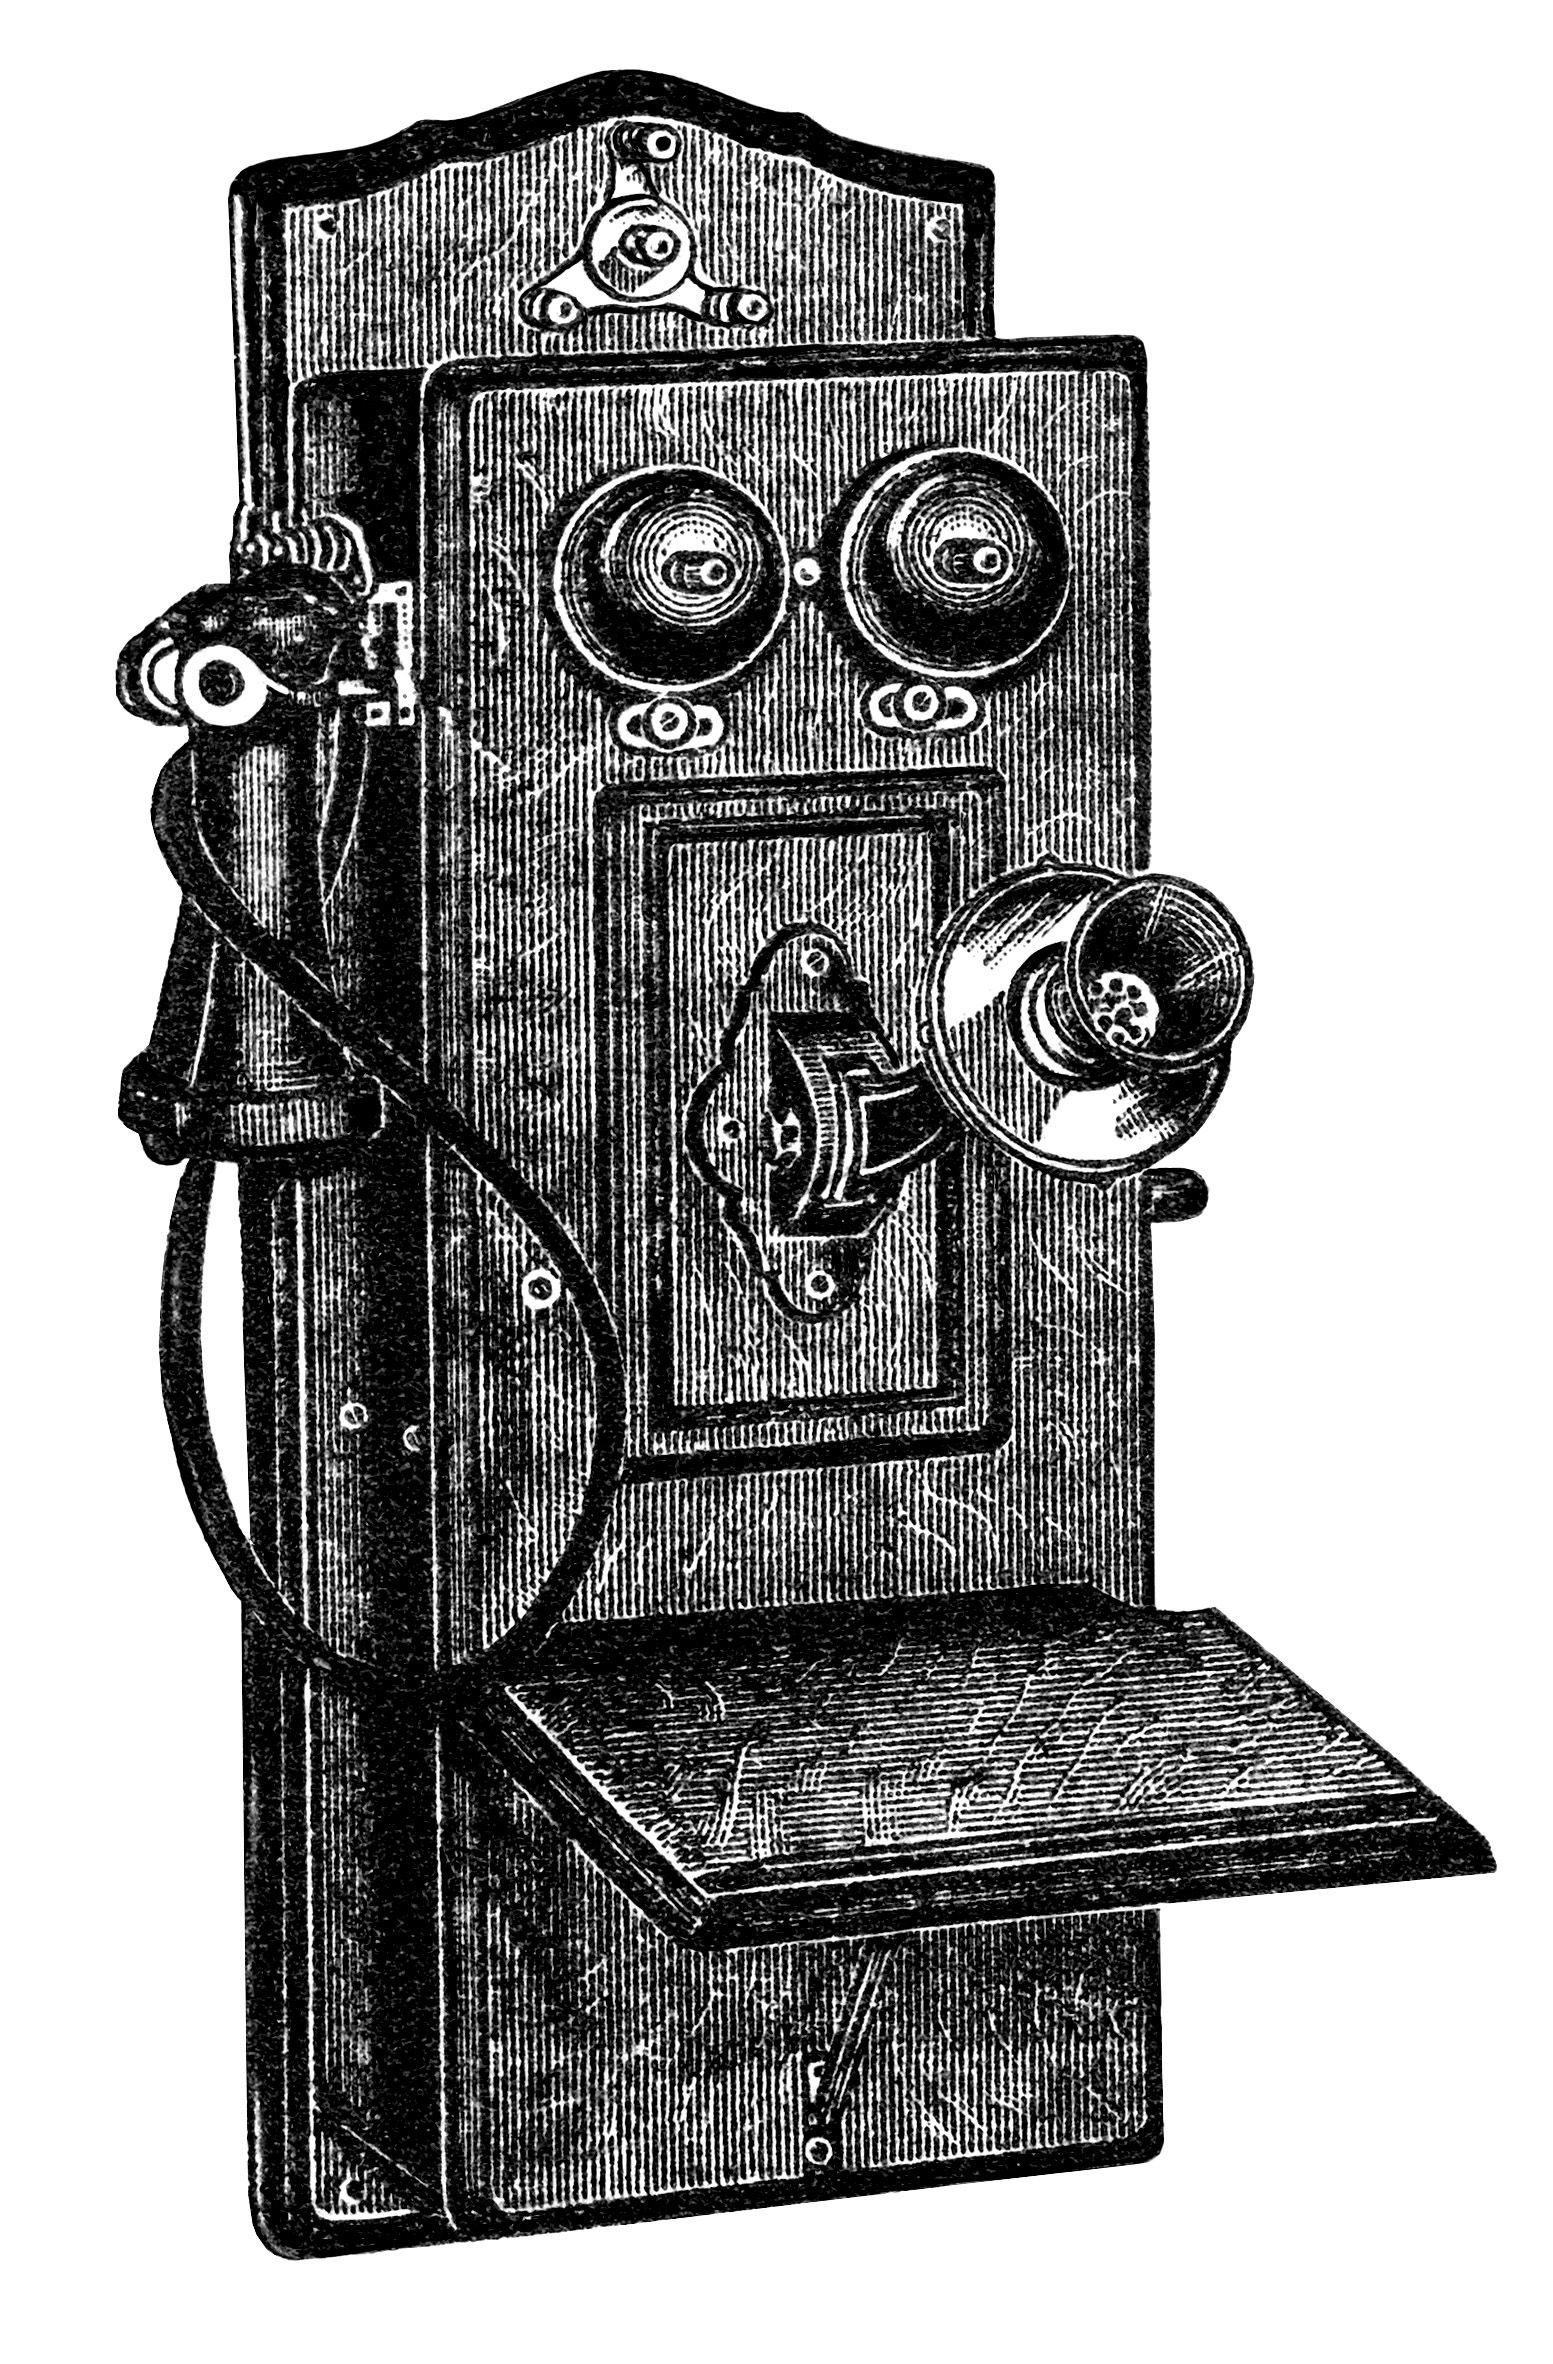 Antique telephone clipart svg black and white download Antique Telephone Clip Art - Old Design Shop Blog svg black and white download